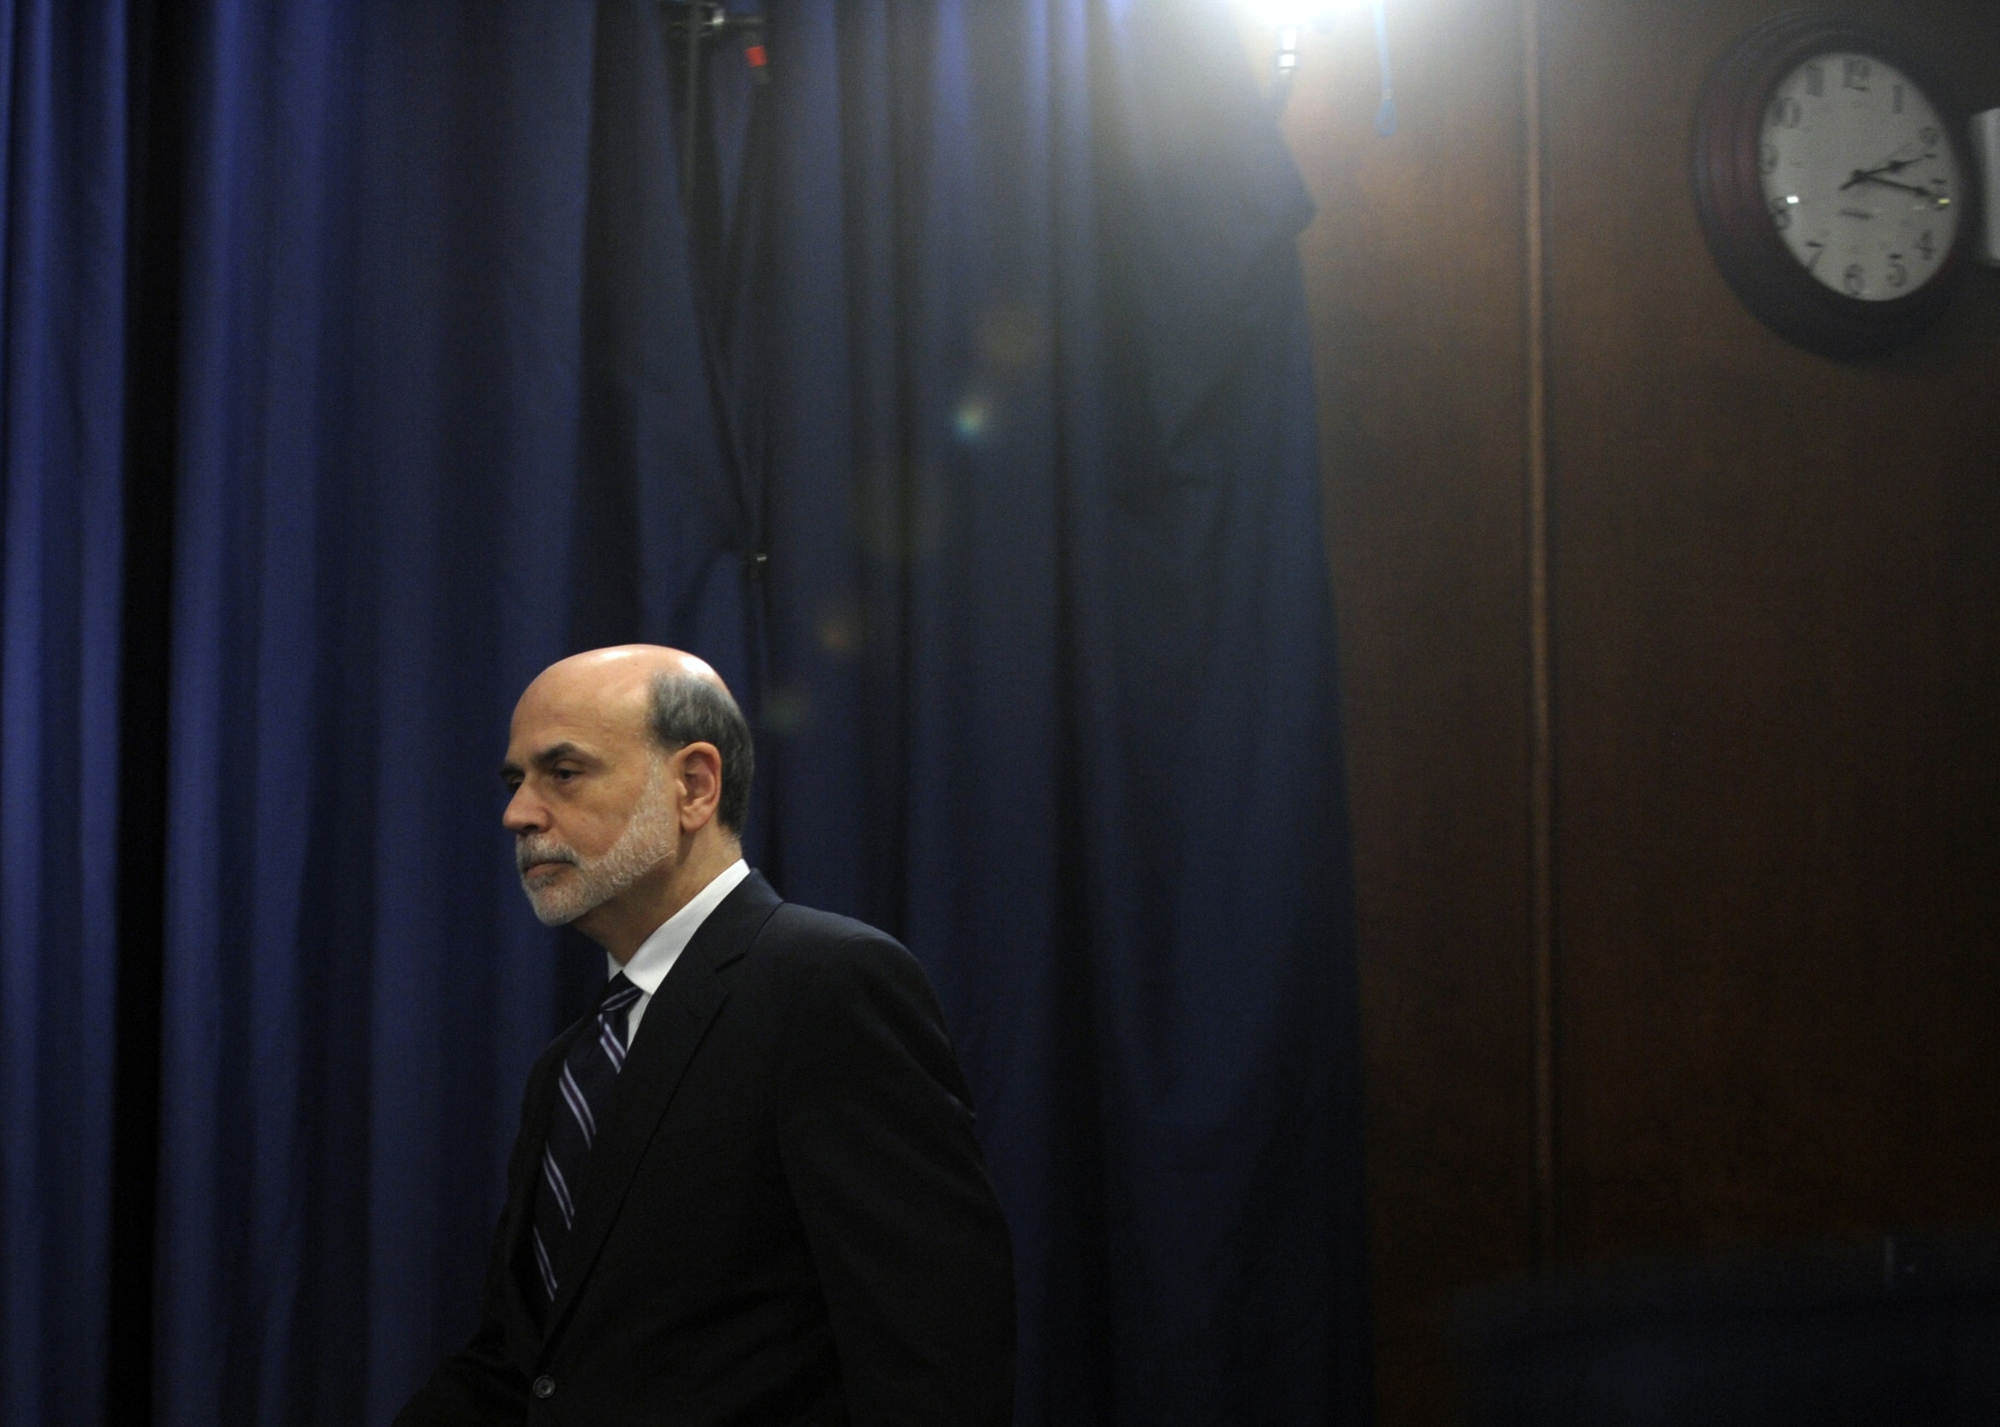 The era of Federal Reserve Chairman Ben Bernanke, shown  arriving for a news conference at the Federal Reserve in Washington in April 2012, has drawn to a close. Today is the final day of Bernanke's eight-year tenure .